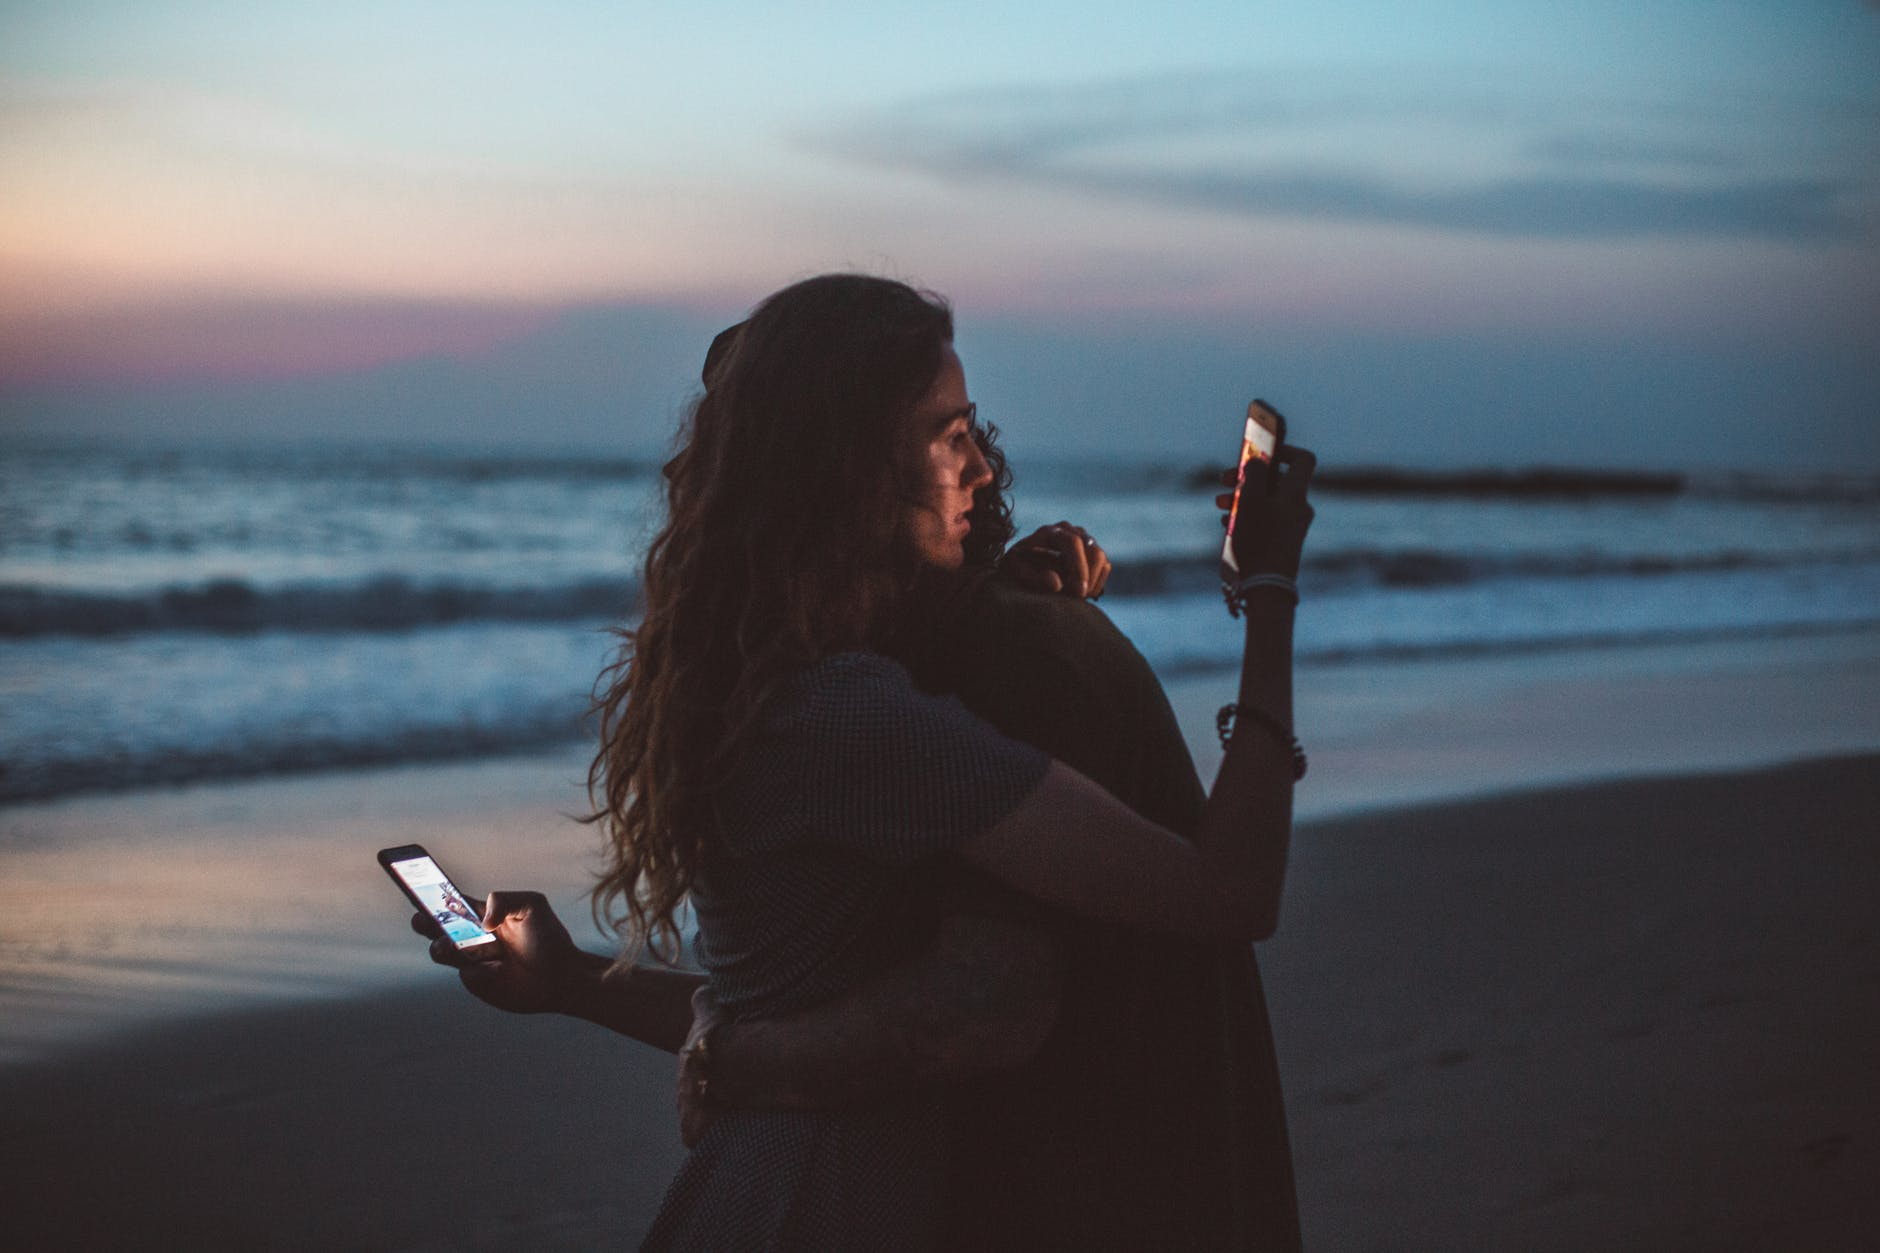 Two girl's standing on a beach staring at their cell phones